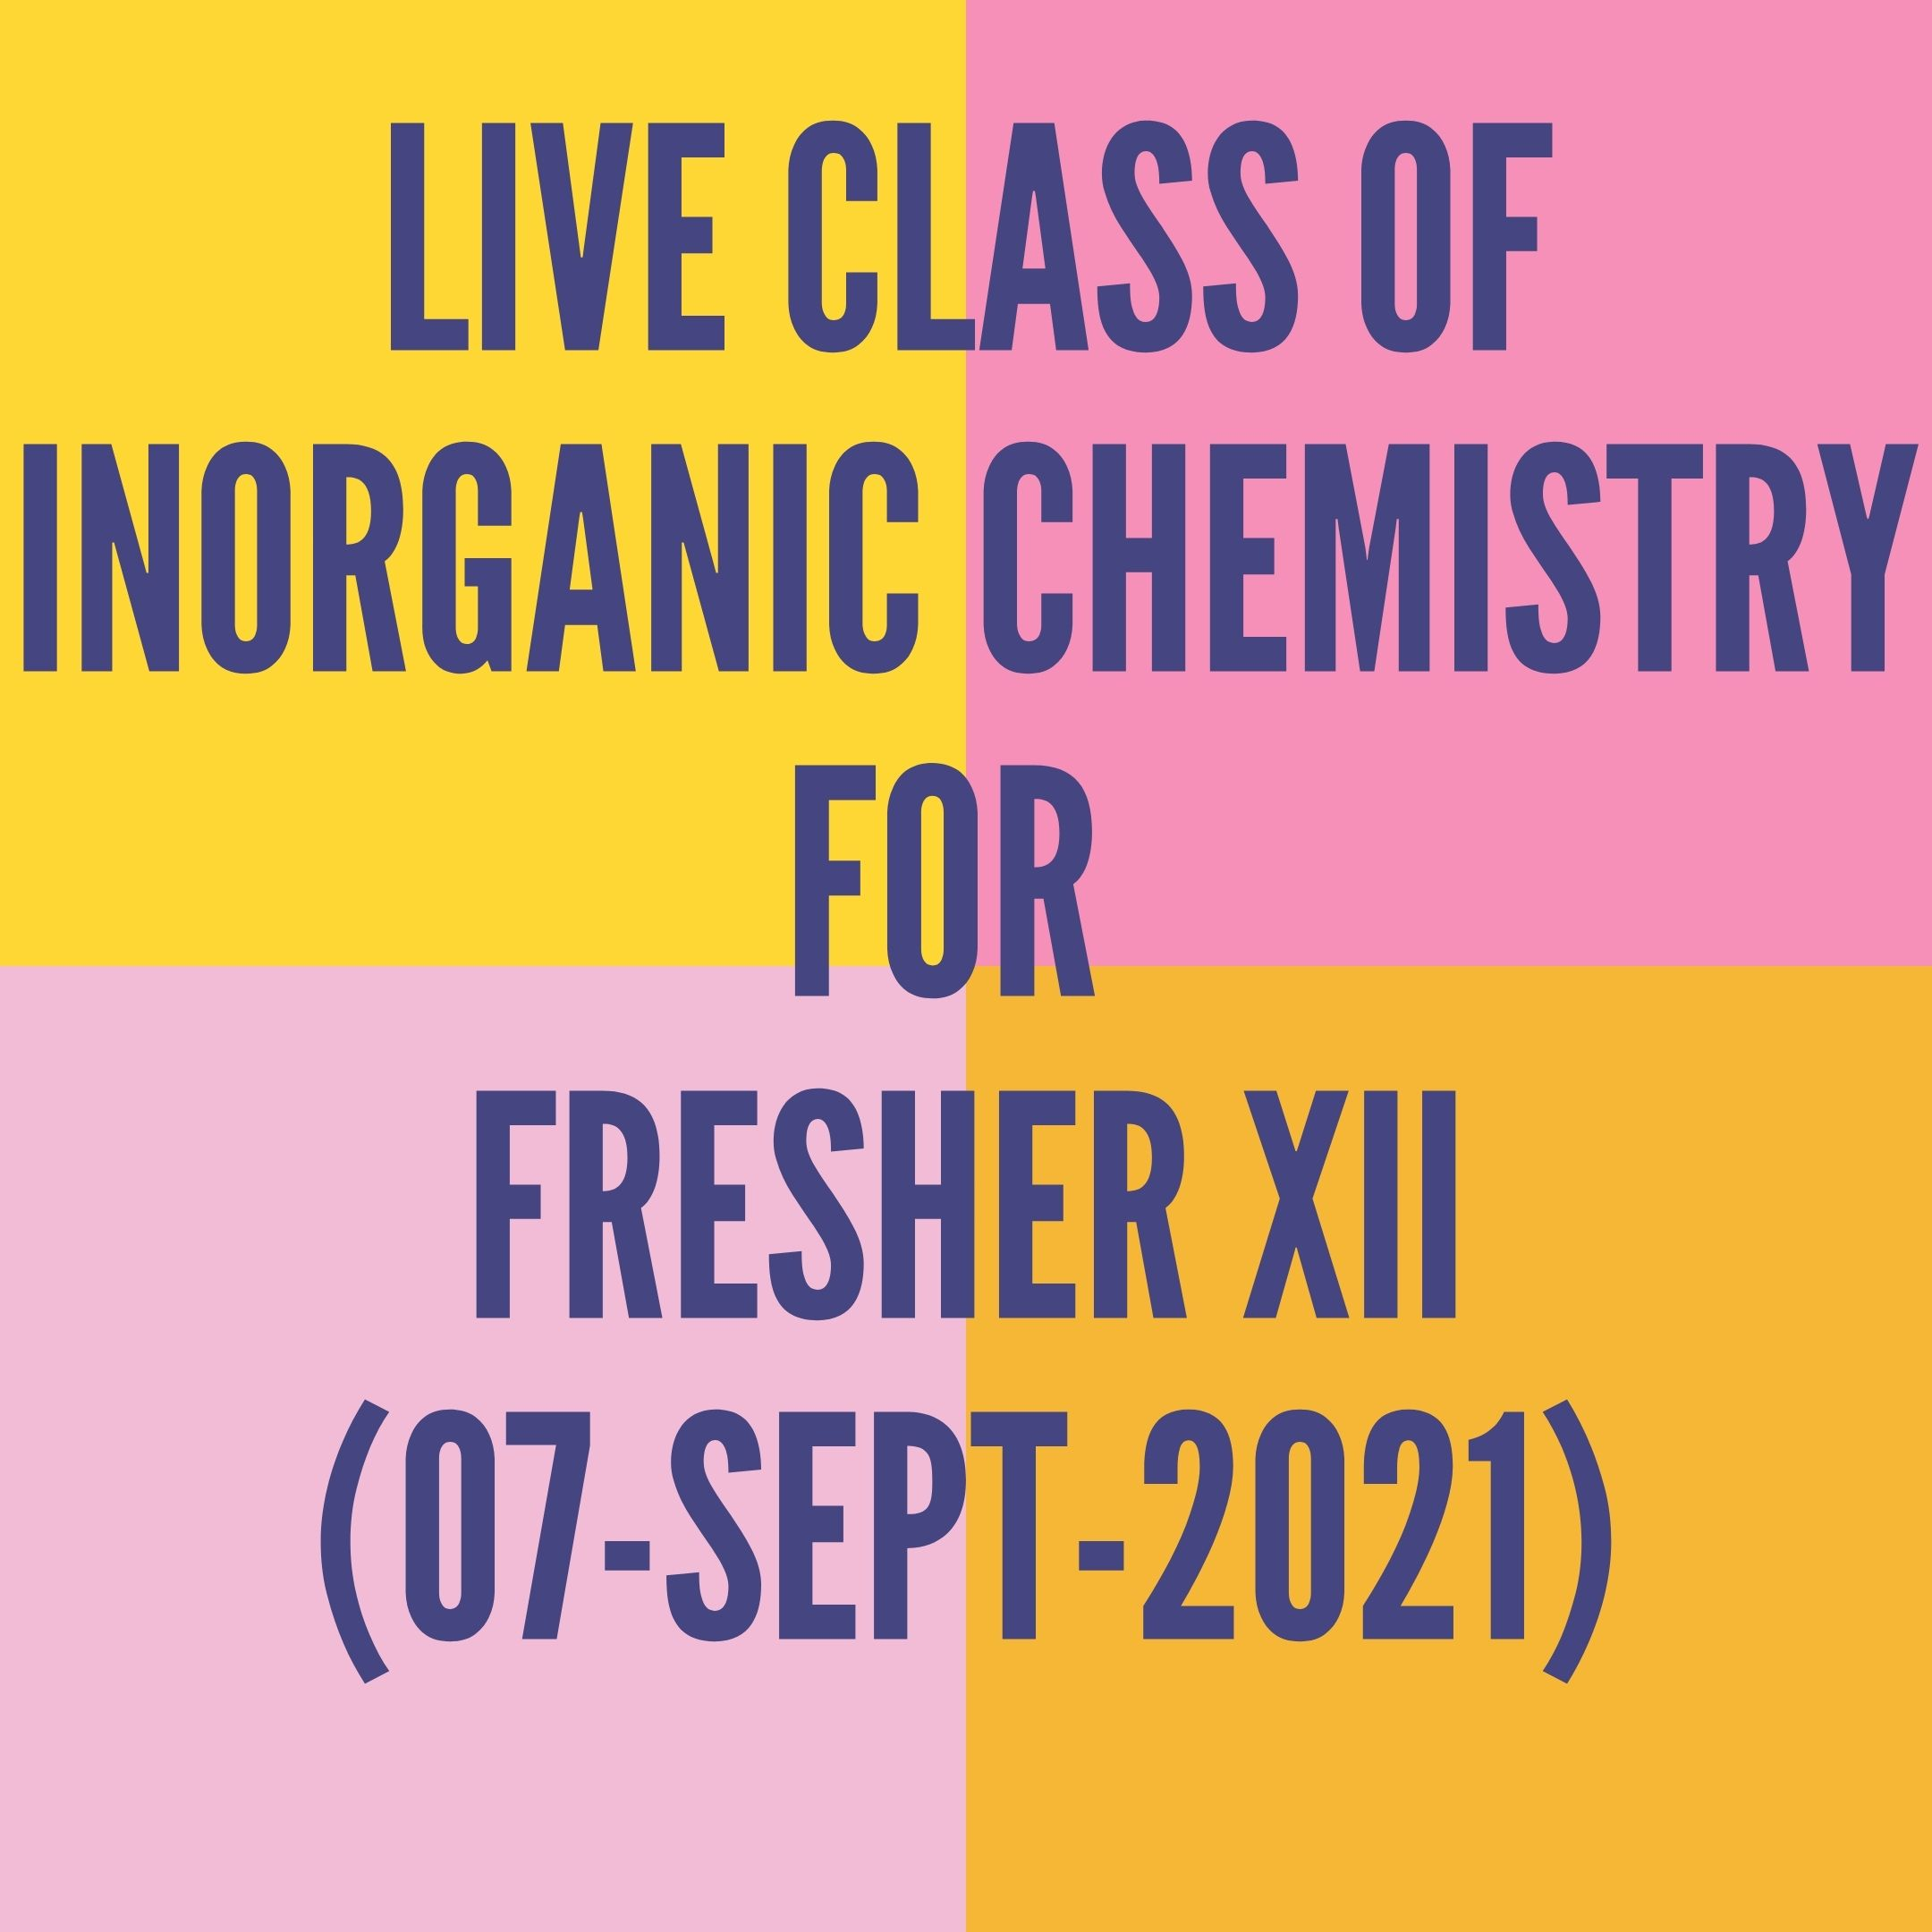 LIVE CLASS OF INORGANIC CHEMISTRY FOR FRESHER XII (07-SEPT-2021) CO-ORDINATION COMPOUND